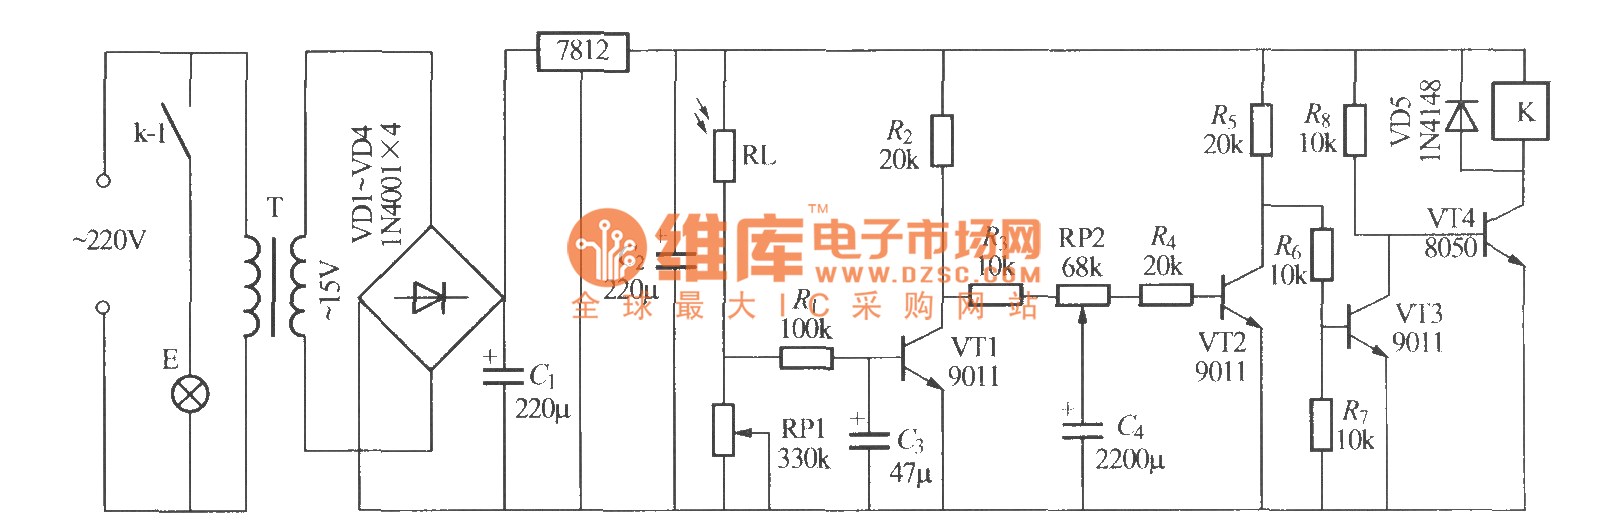 Simple Light Operated Street Lamp Circuit Diagram6 Make Diagram